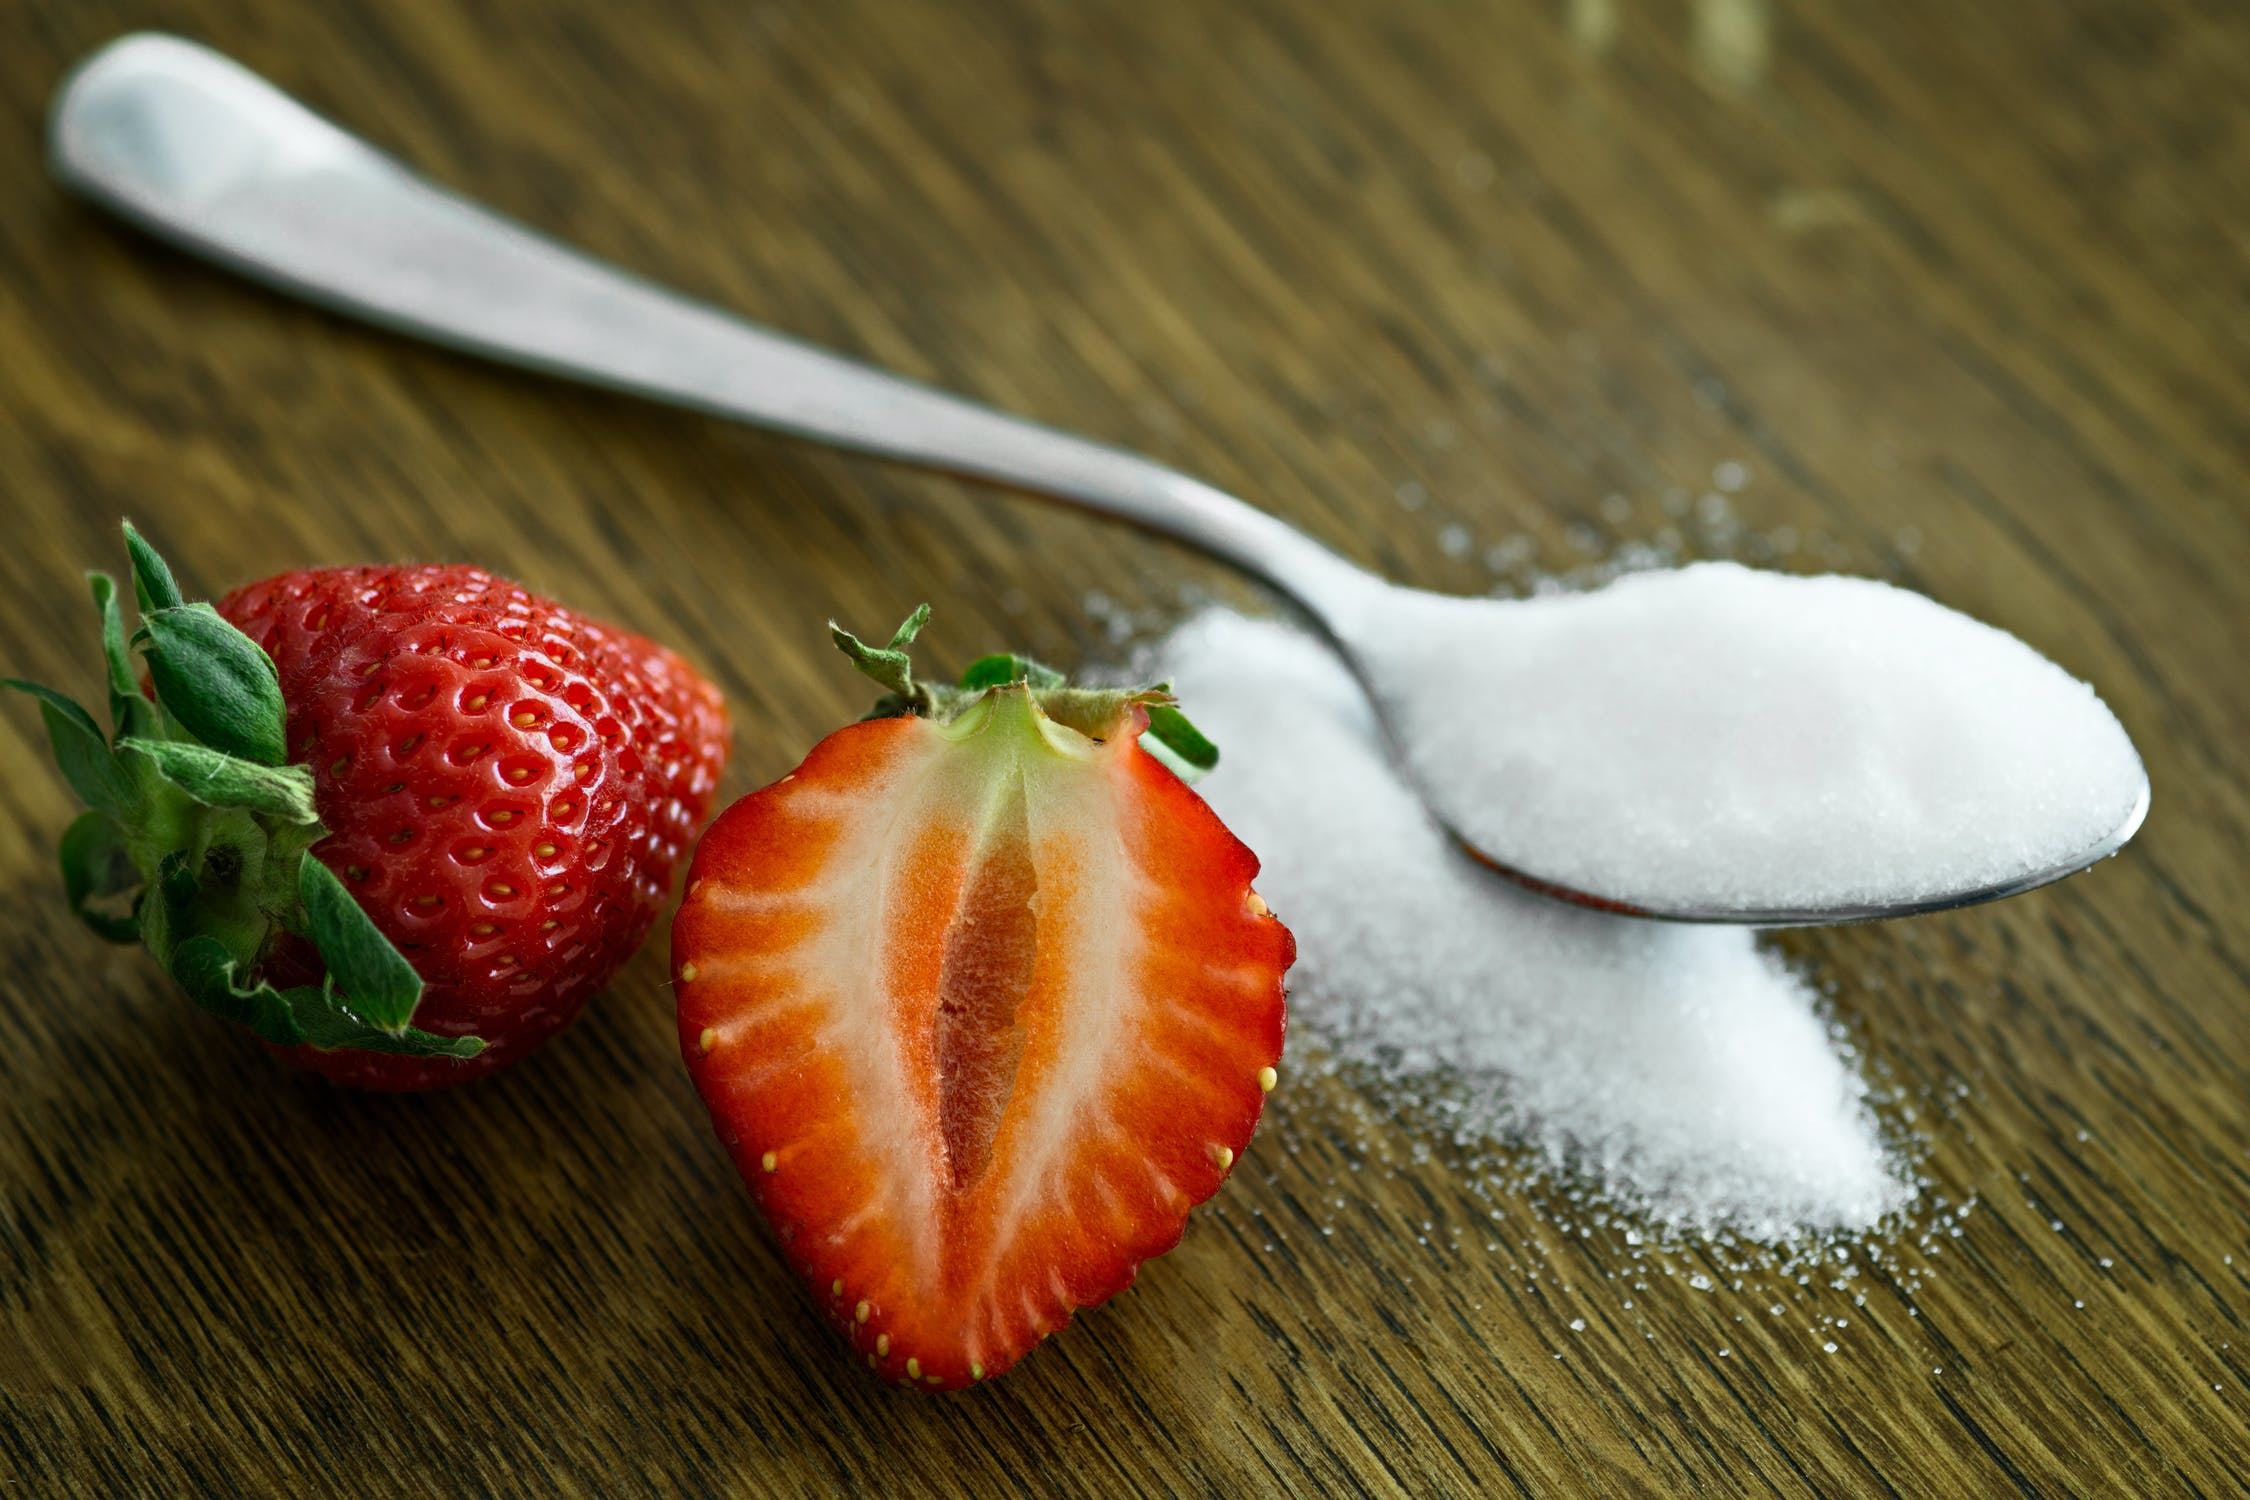 sugar in a spoon next to a cut up strawberry